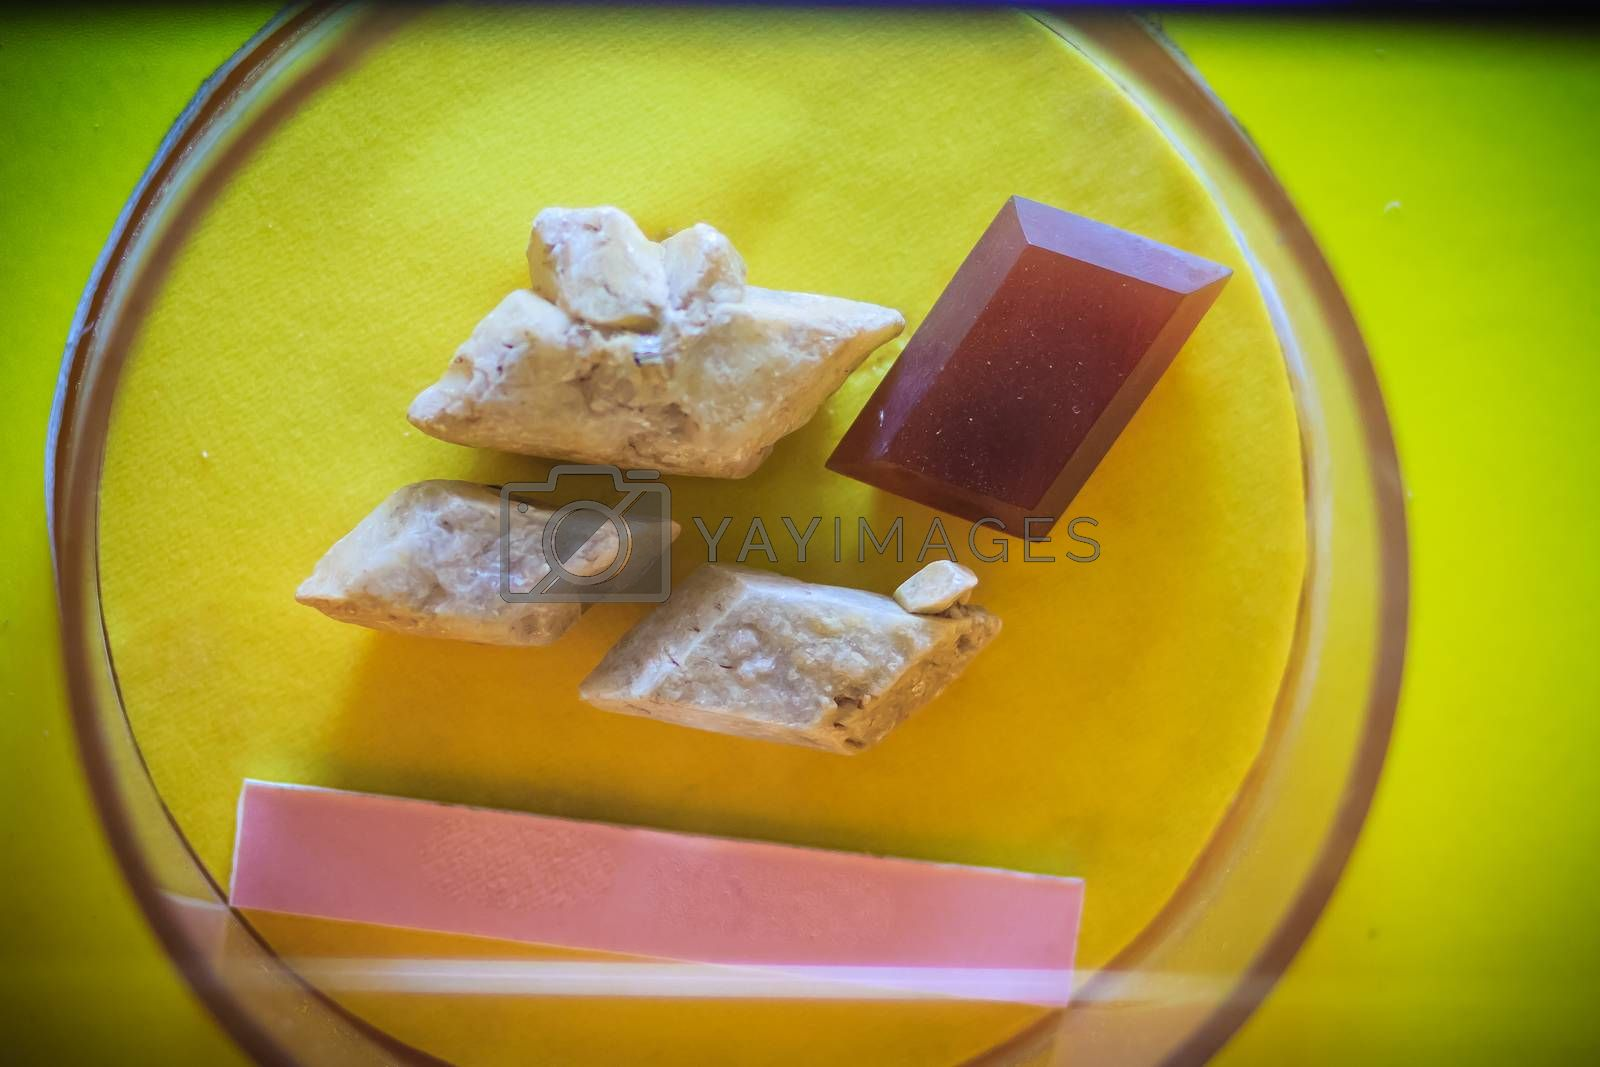 Gypsum rock specimen from mining and quarrying industries. Gypsum is a soft sulfate mineral composed of calcium sulfate dihydrate.